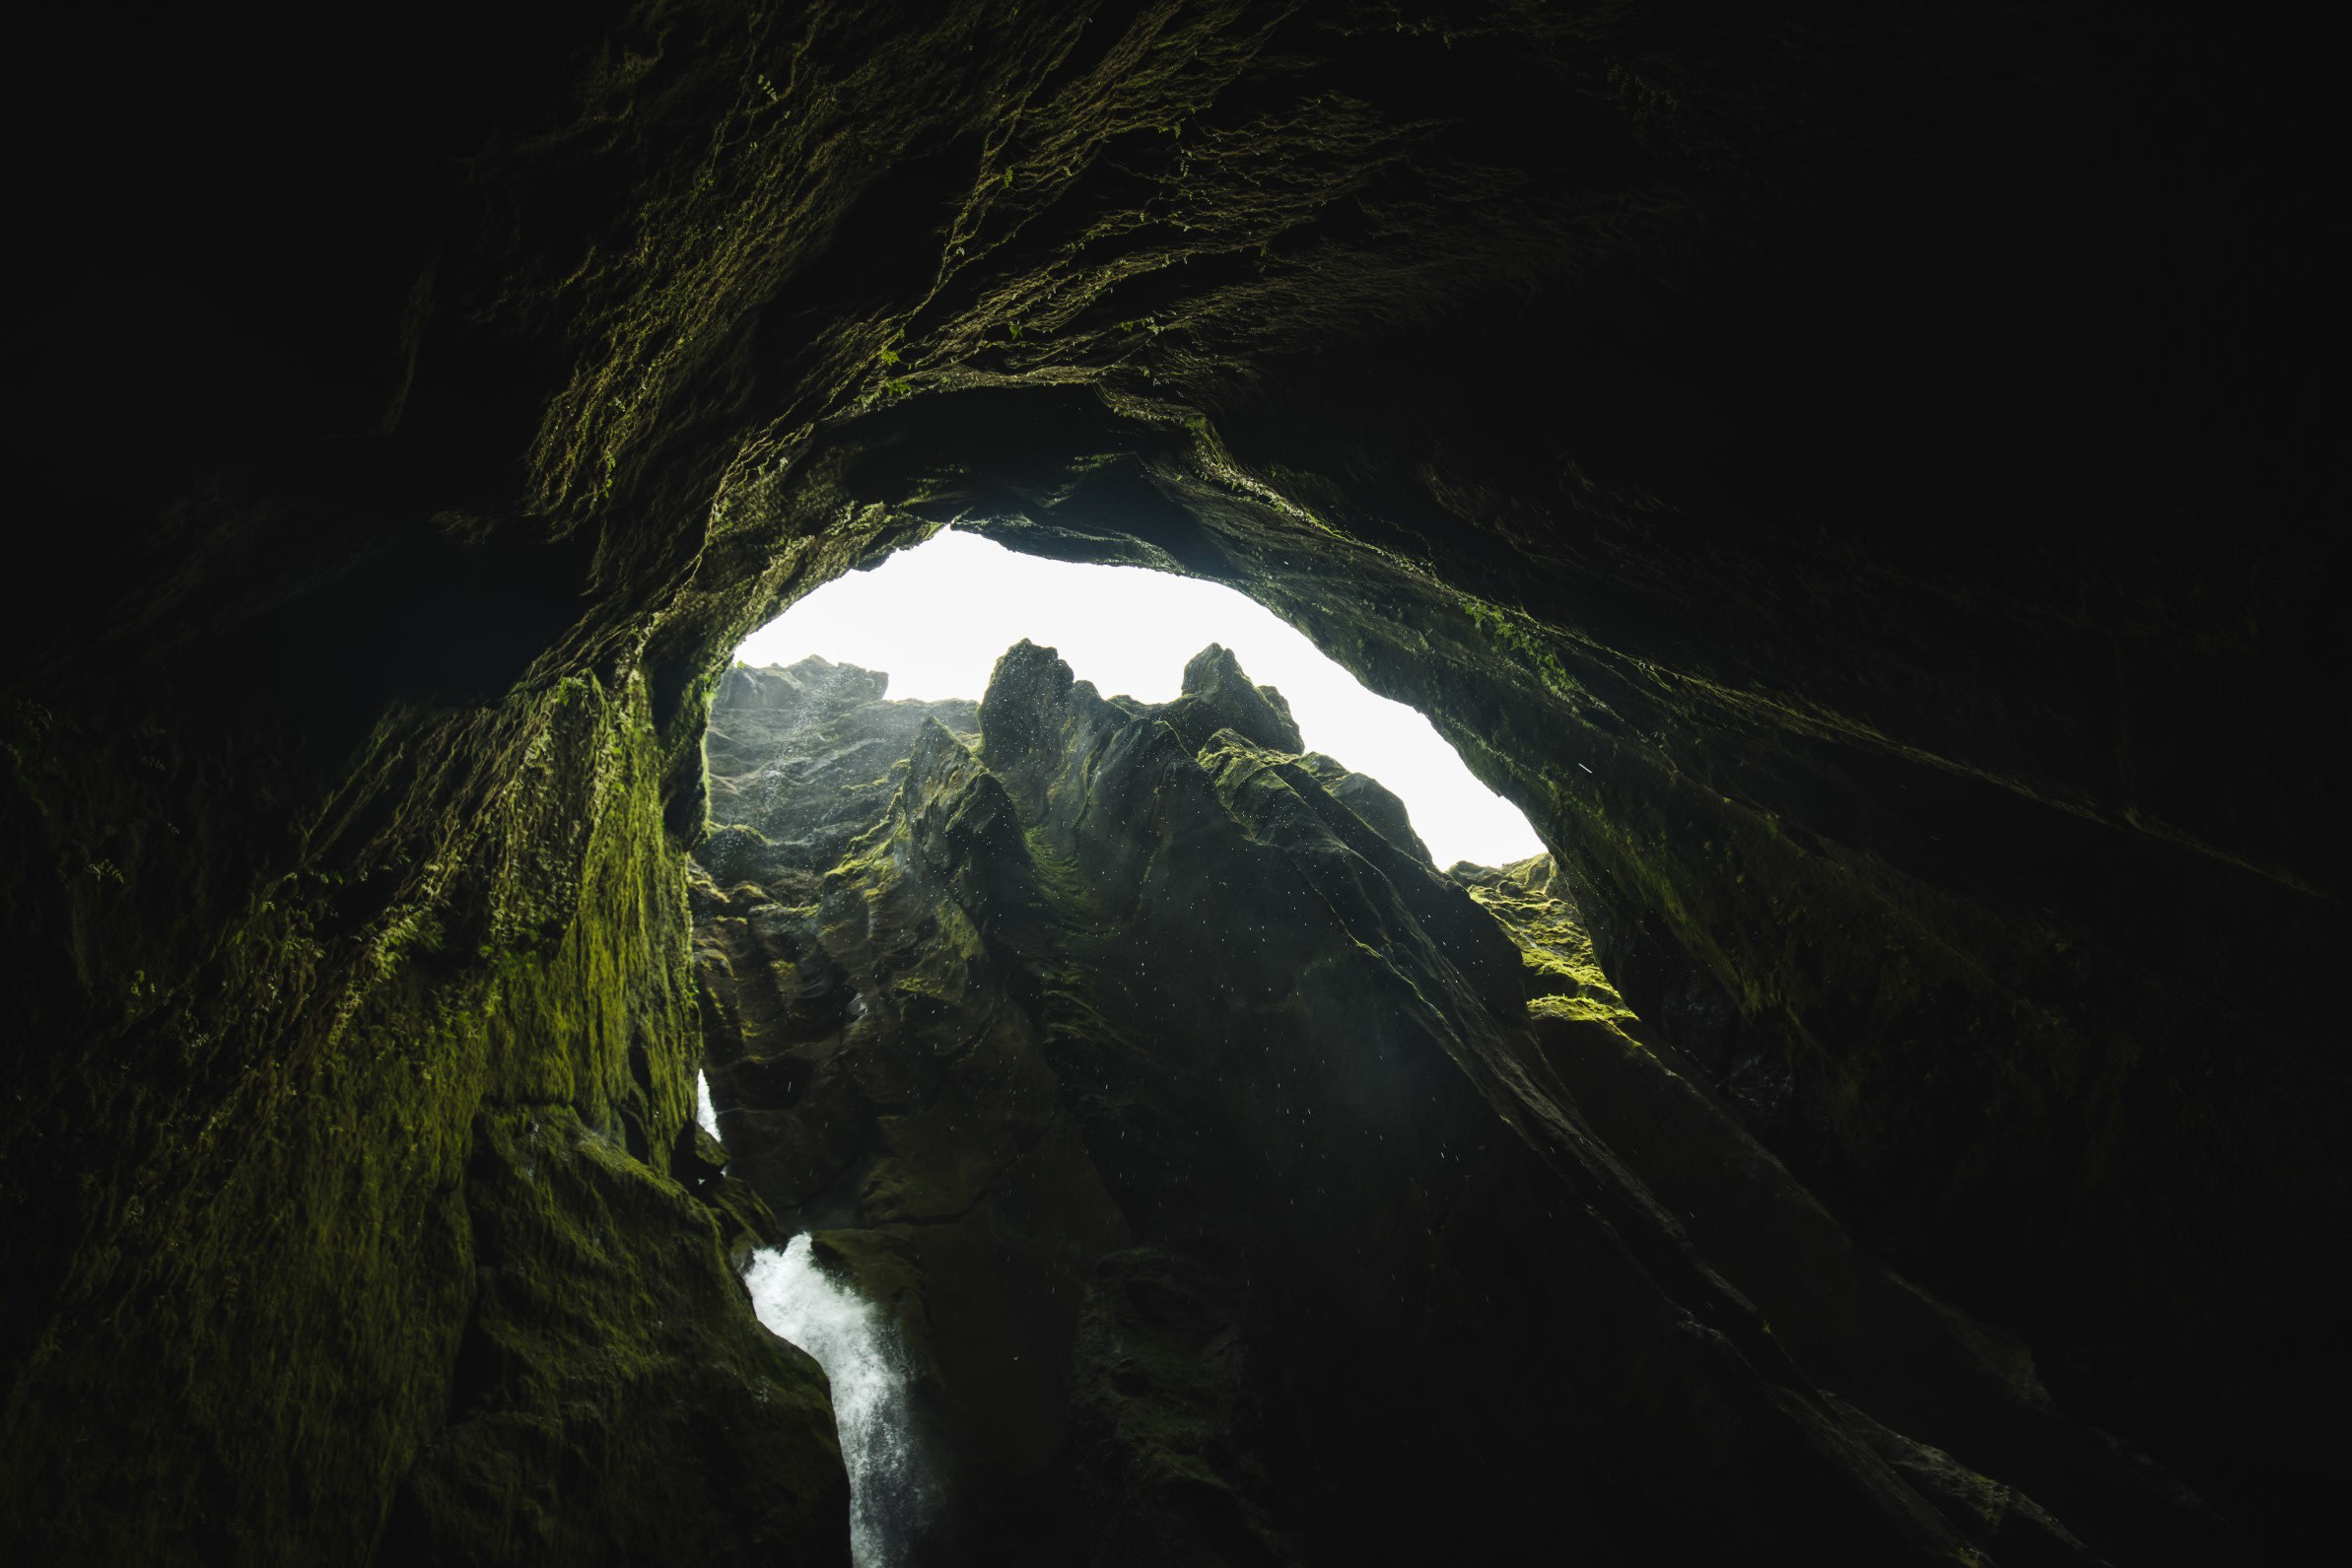 A view from within a cave-like structure with a small body of water in the foreground, looking out towards the light